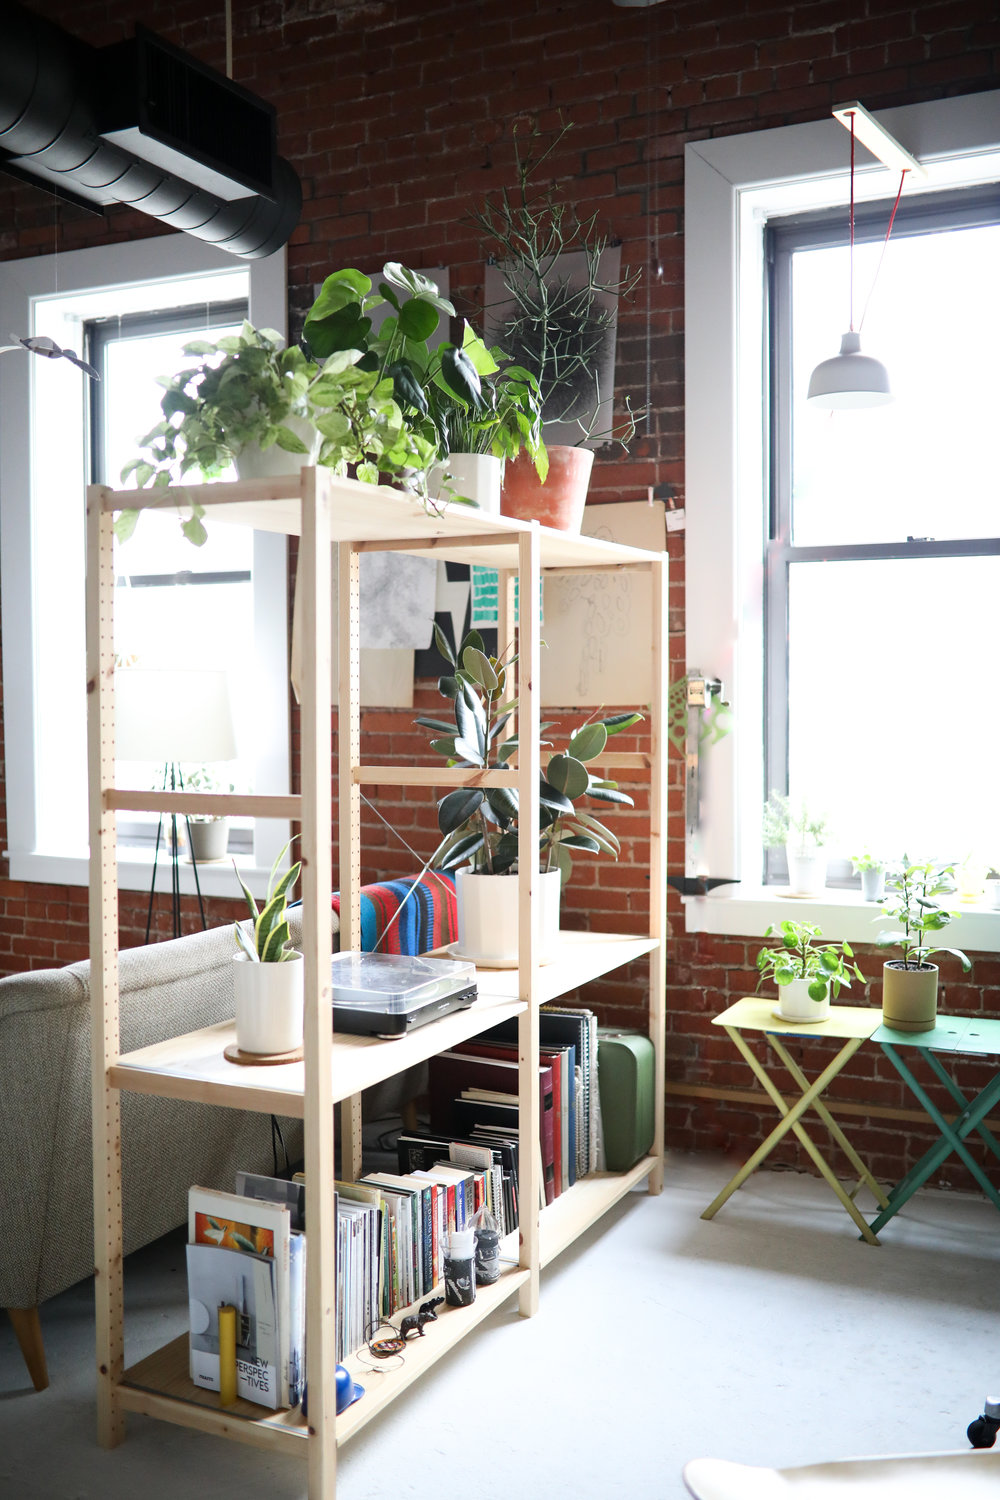 Open Shelving - Middle of apartment